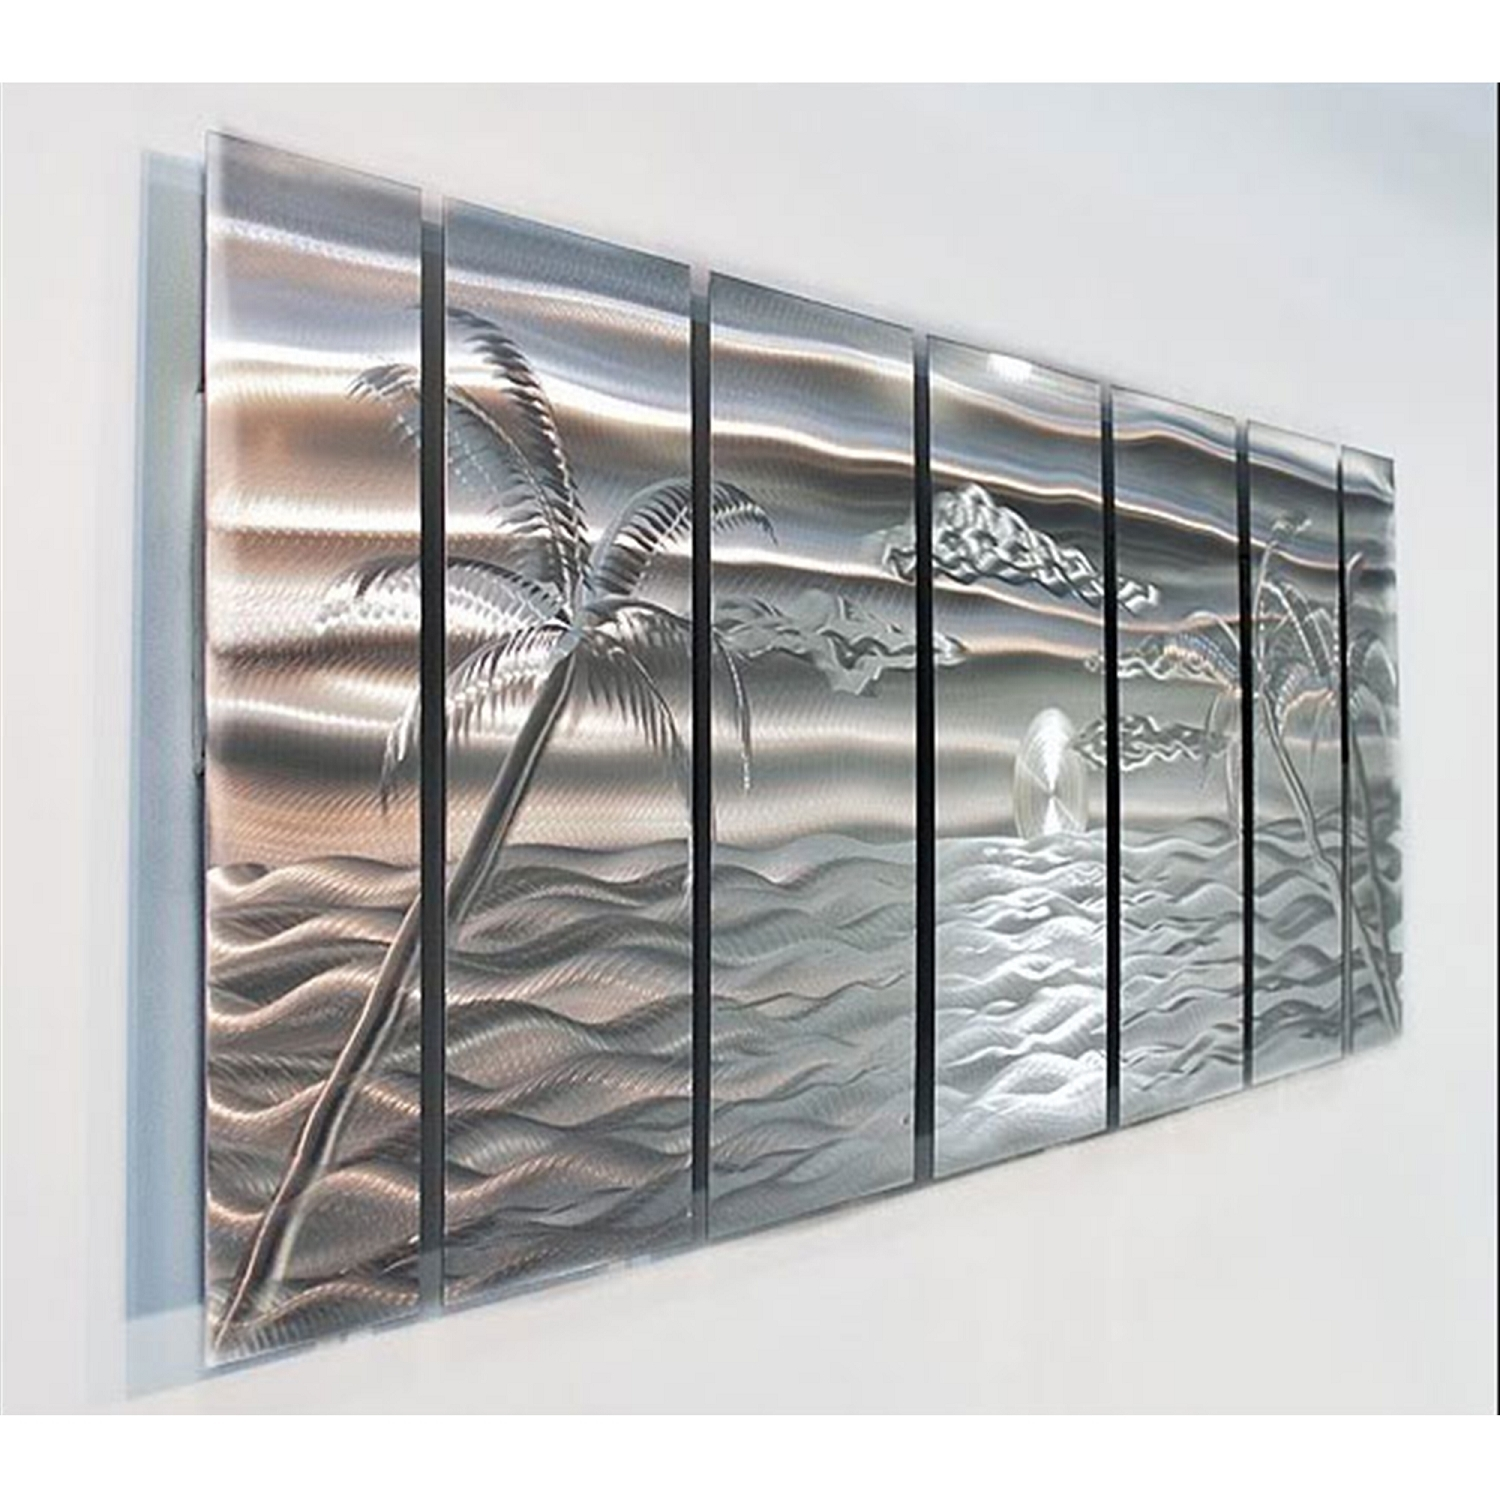 Classy 10+ Abstract Metal Wall Art Design Inspiration Of Best 25+ With Regard To Recent Abstract Nautical Wall Art (View 6 of 20)